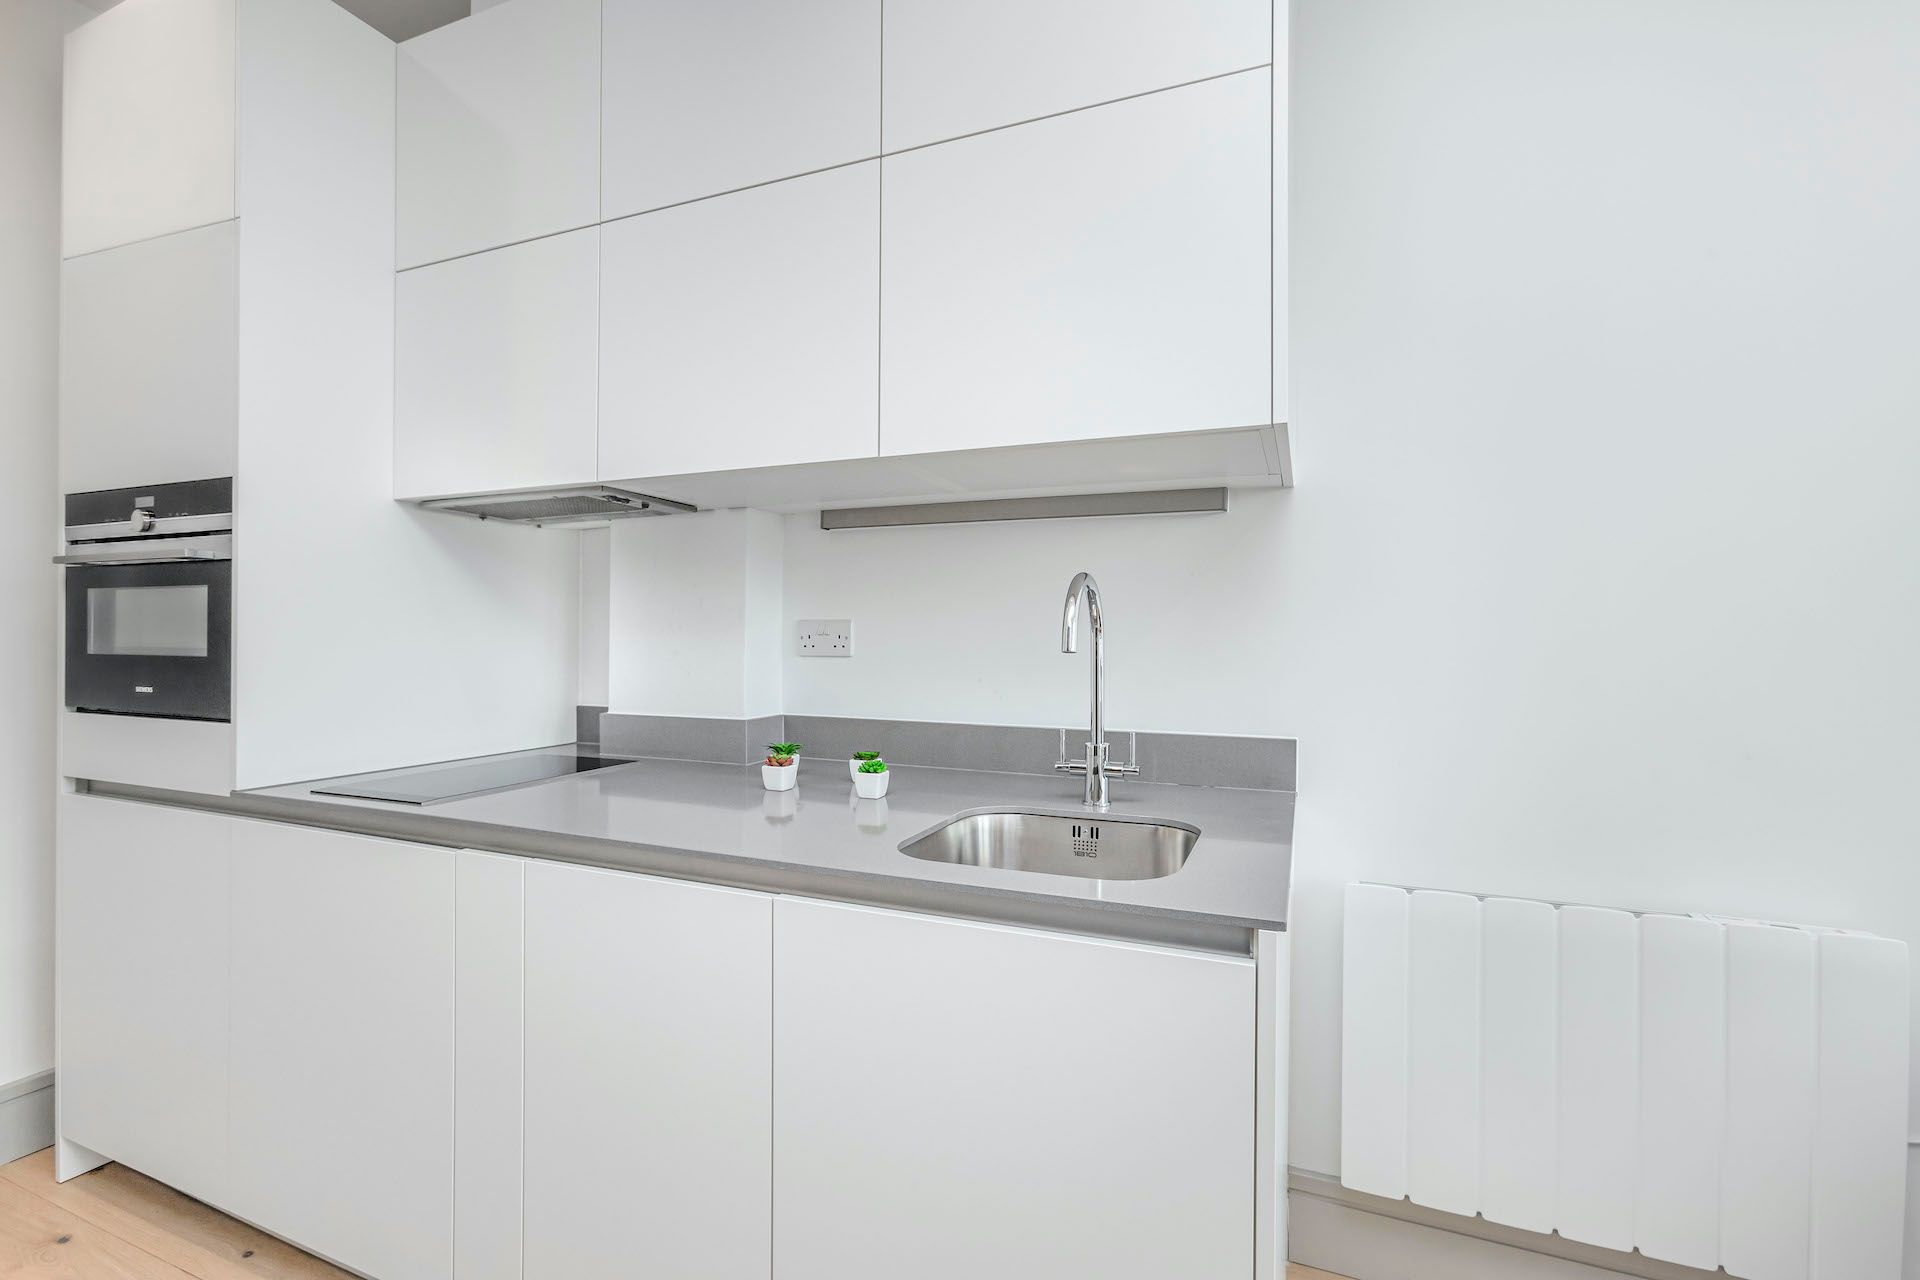 1 Bedroom apartment to rent in London BRO-BH-0089